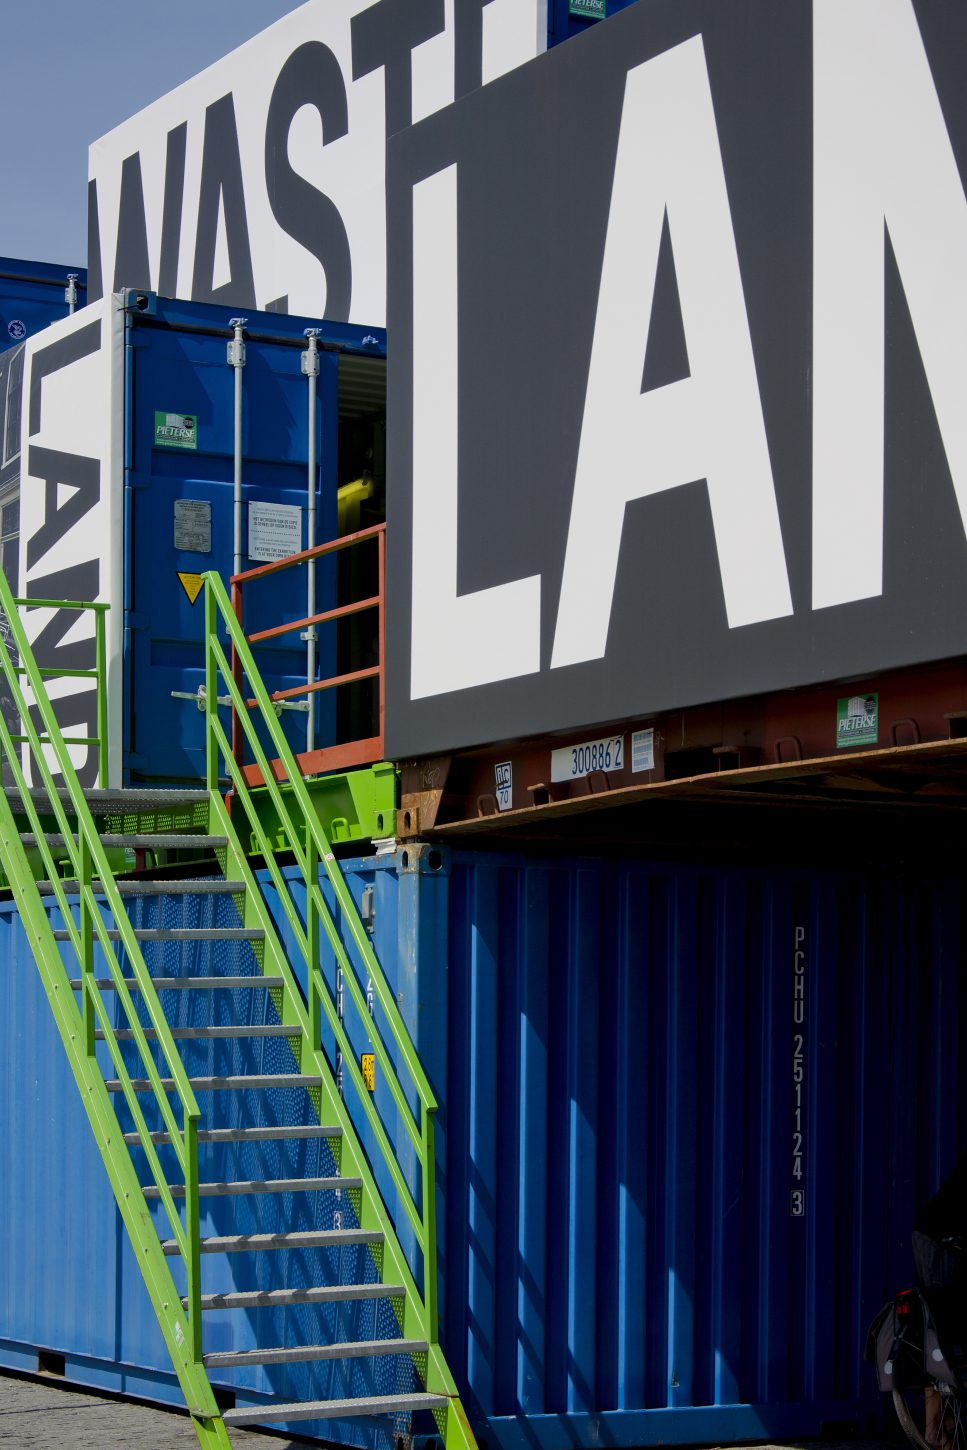 Close up of typography applied on shipping containers at the outdoor exhibition Wasteland, Kadir van Lohuizen